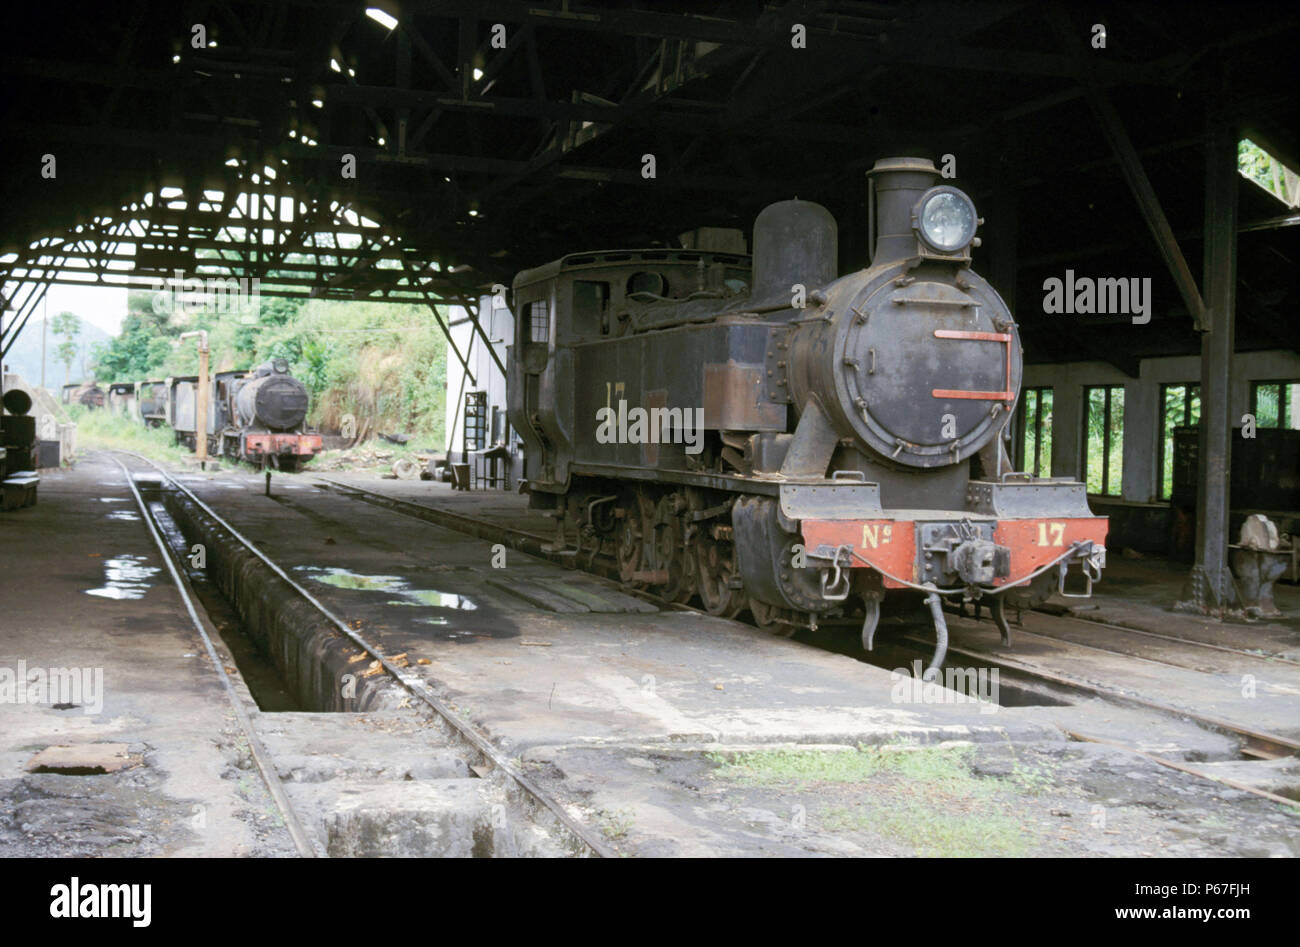 Dunkwa Loco Shed Ghana on Sunday 16th June 1985 with Hunslet 0-6-0T No.17 in the depot entrance with Vulcan Foundry built No.133 in the background. - Stock Image